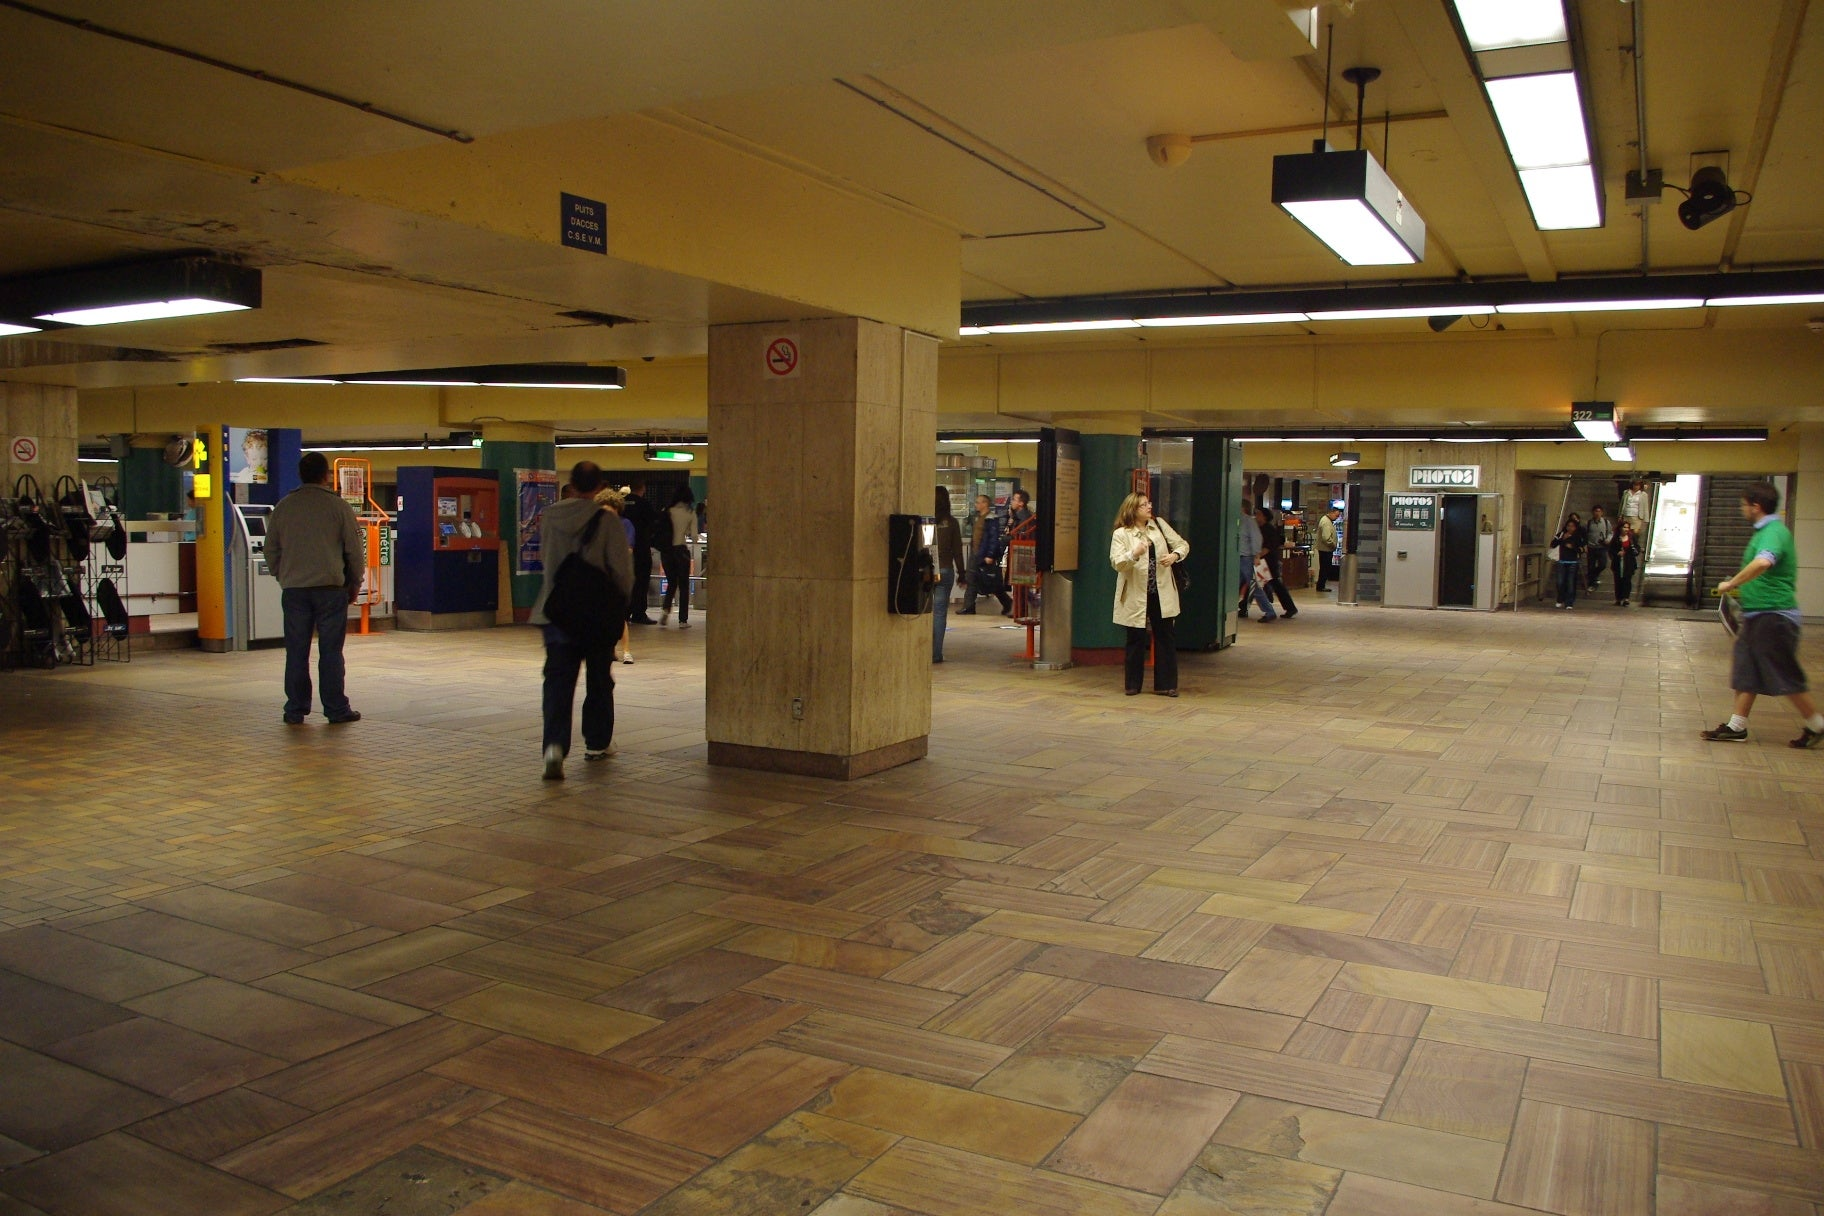 The Montréal Subway